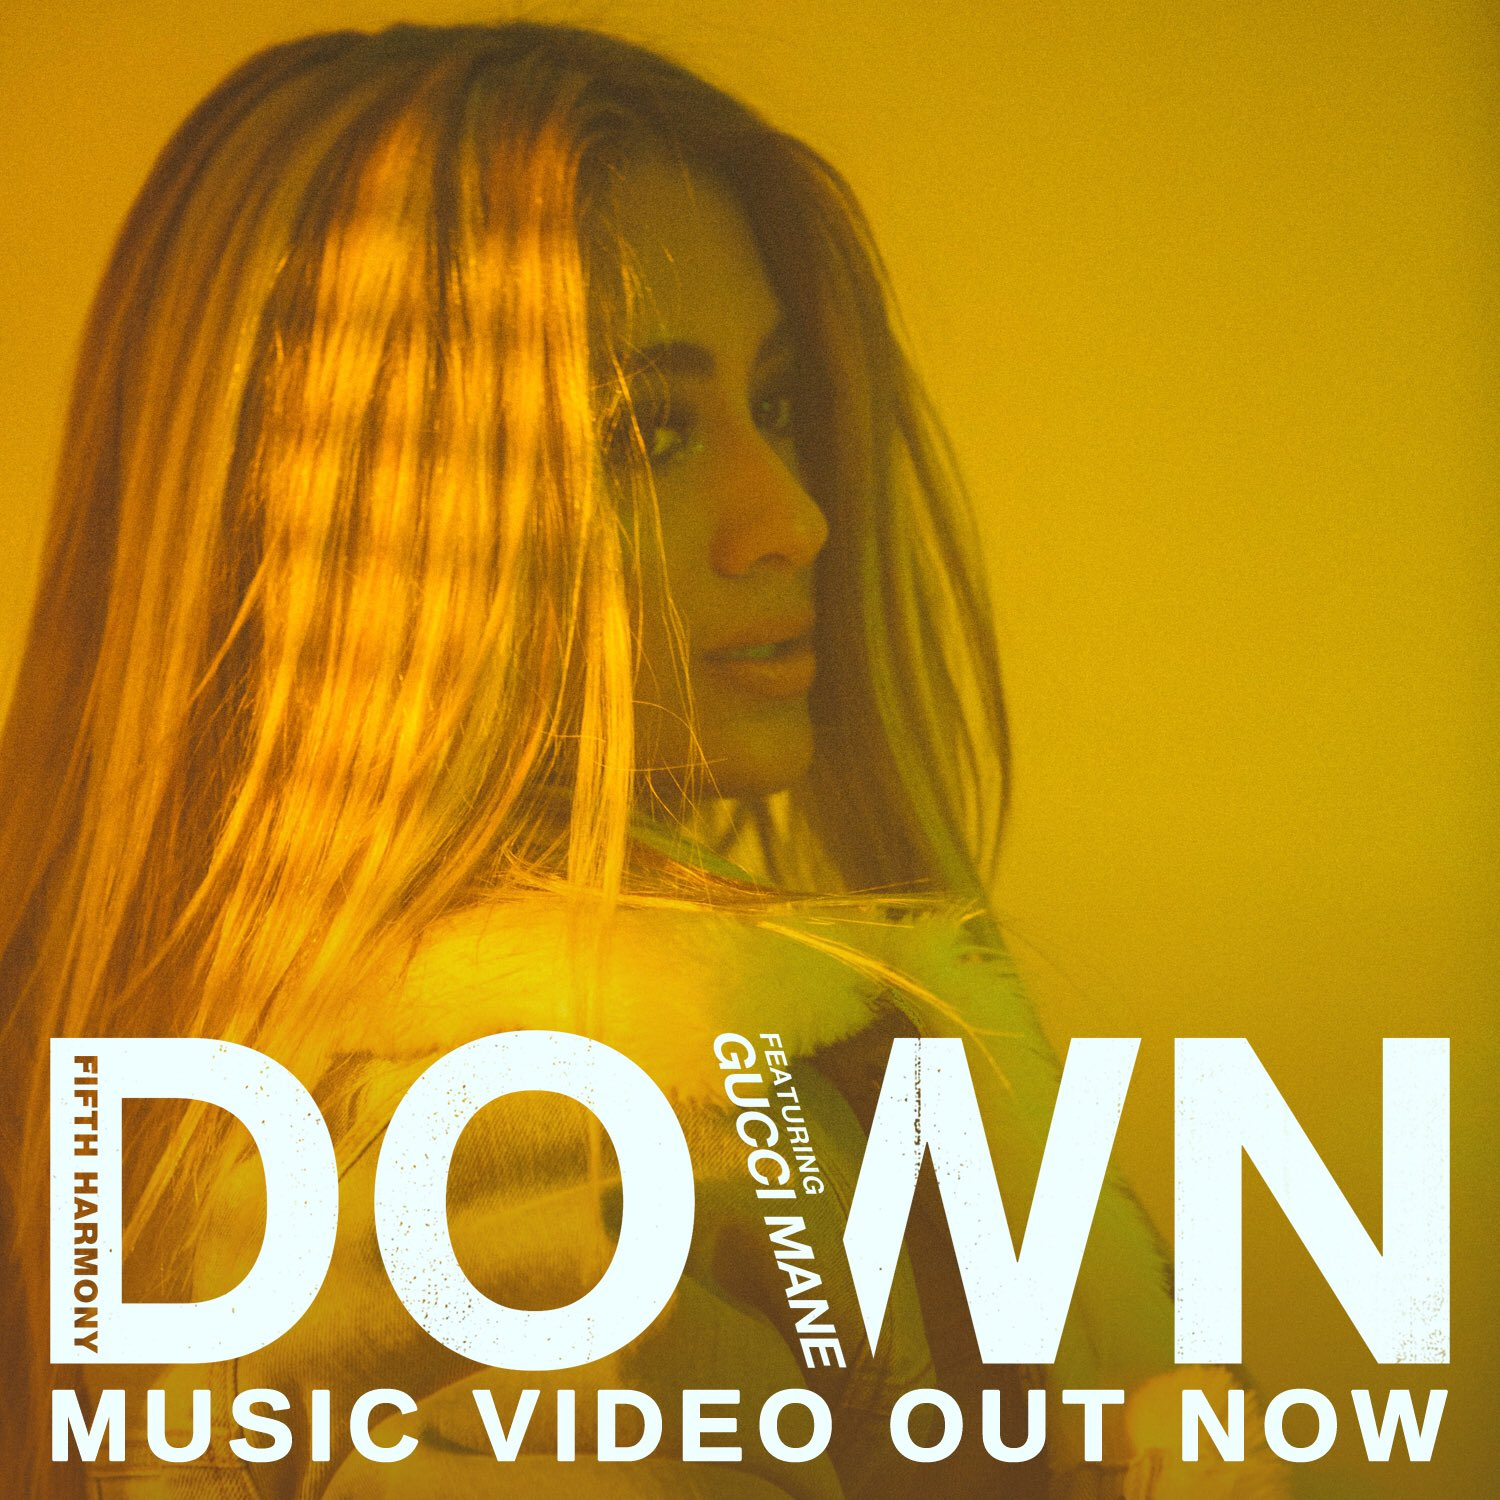 #DownMusicVideo OUT NOW @AllyBrooke ⬇️ https://t.co/Q4JEapULz9